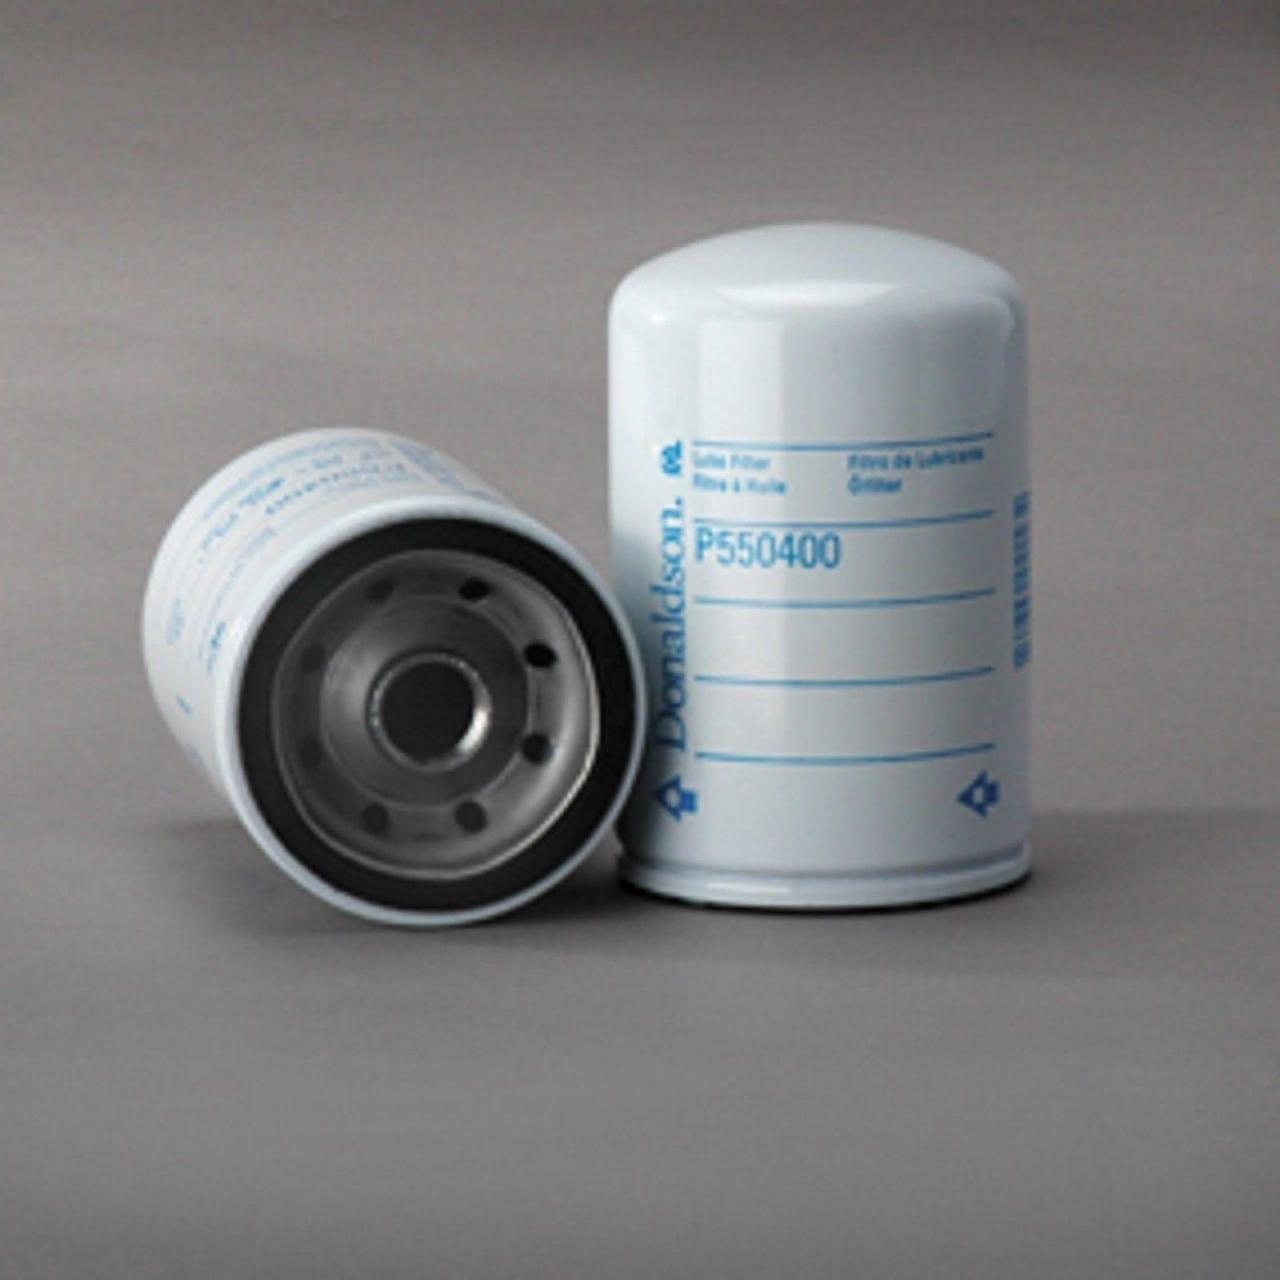 China Ford Ranger F-150 Donaldson P550400 Engine Oil Filter wholesale